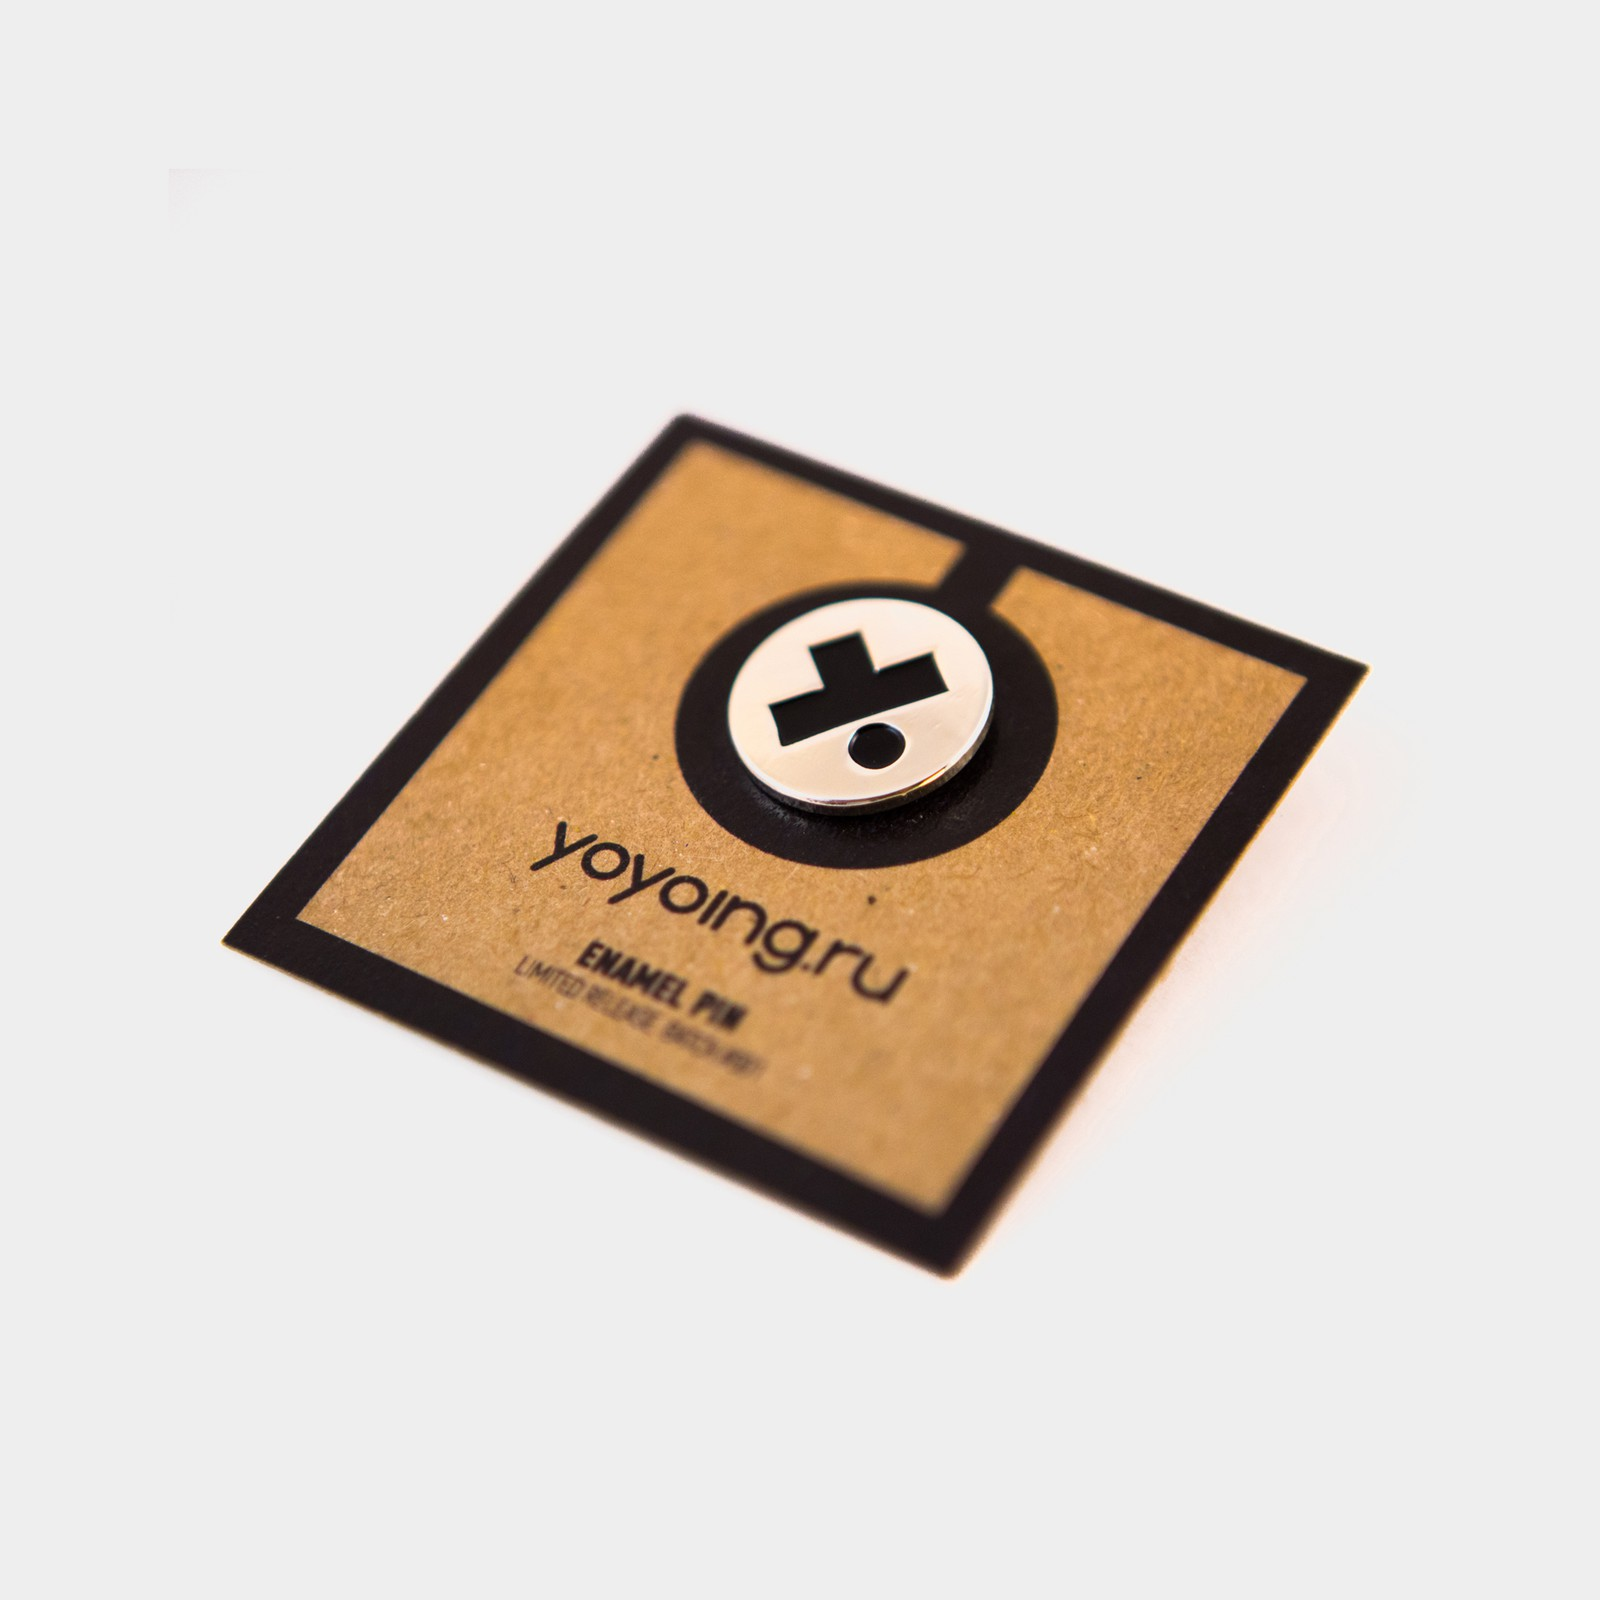 Batch #001 Enamel Pin (Metallic / Black) от yoyoing.ru